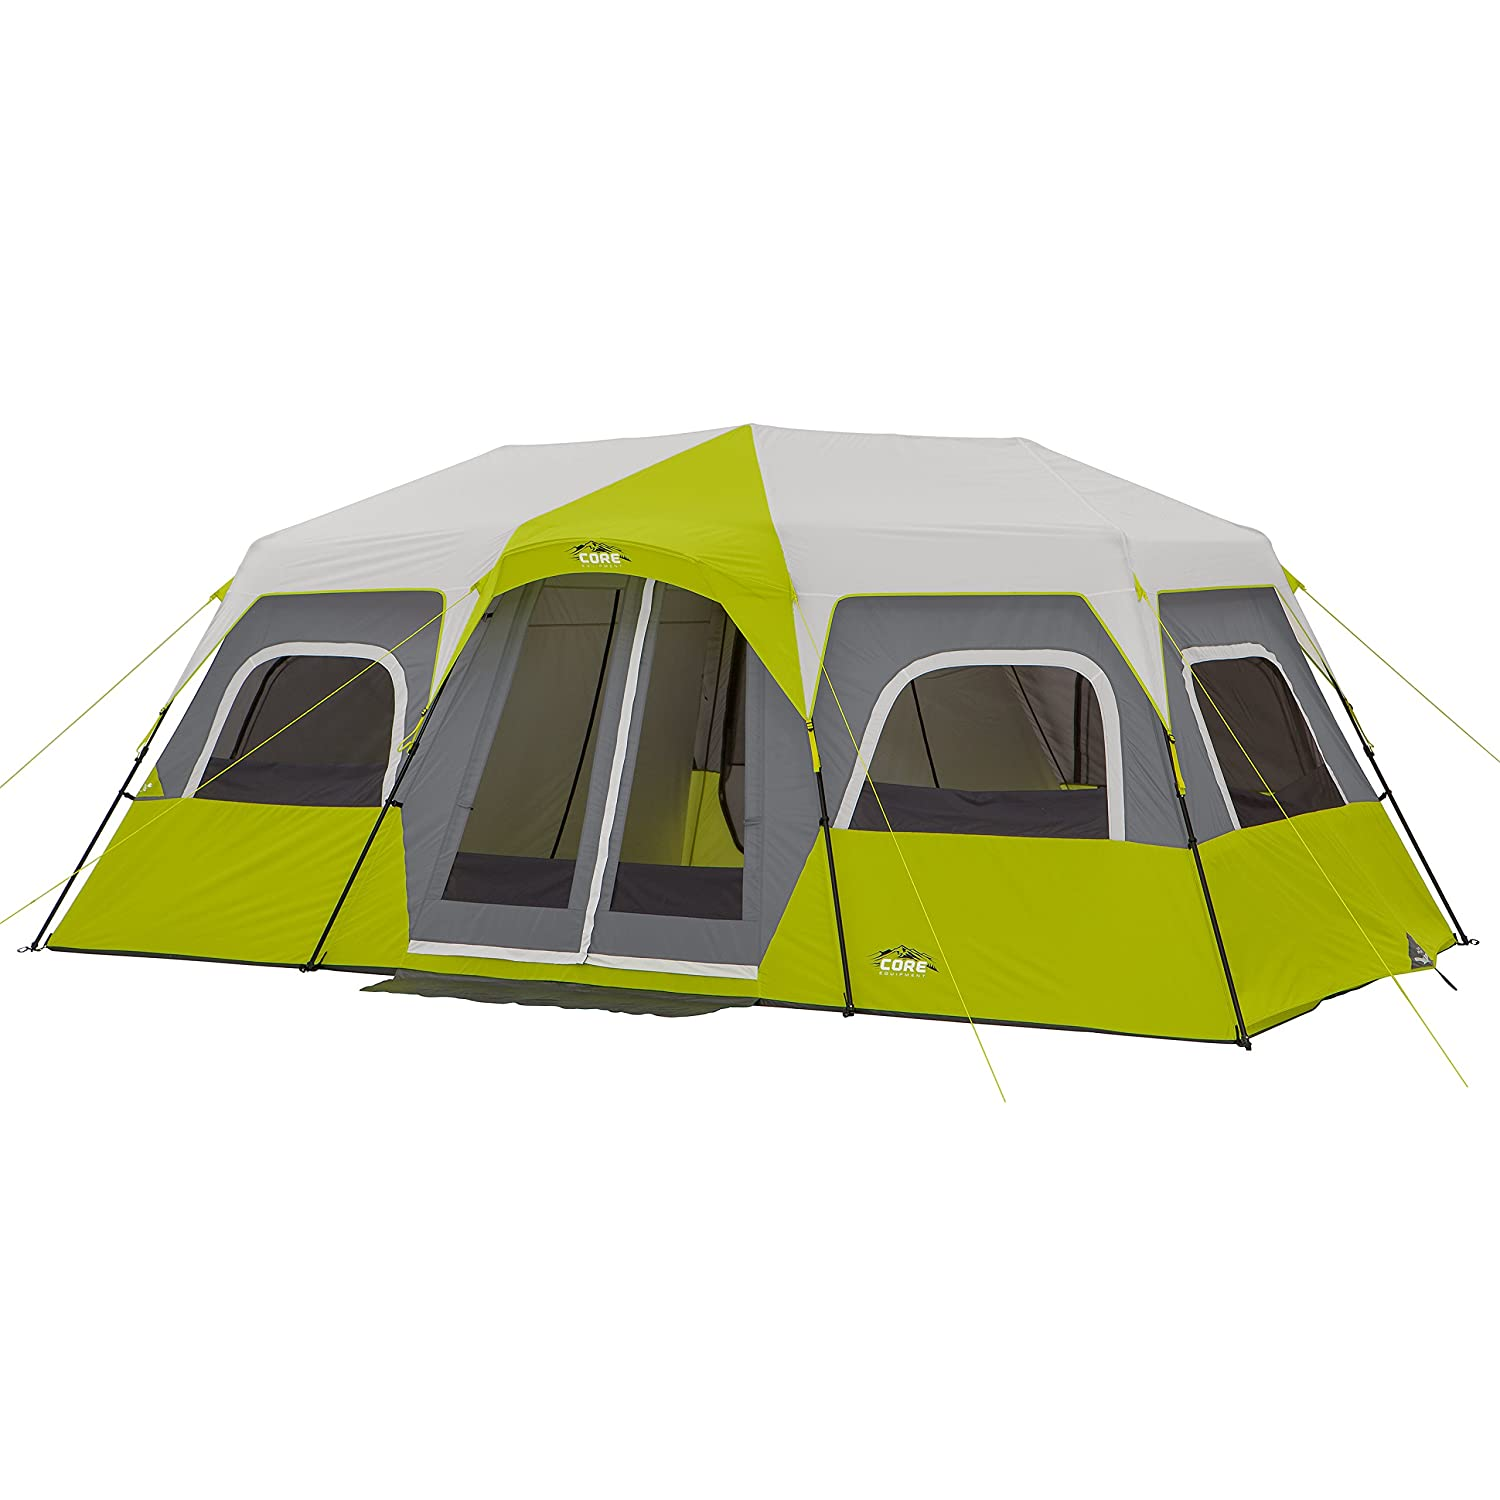 Top 5 Best 10-Person Tents For Large Groups (2019